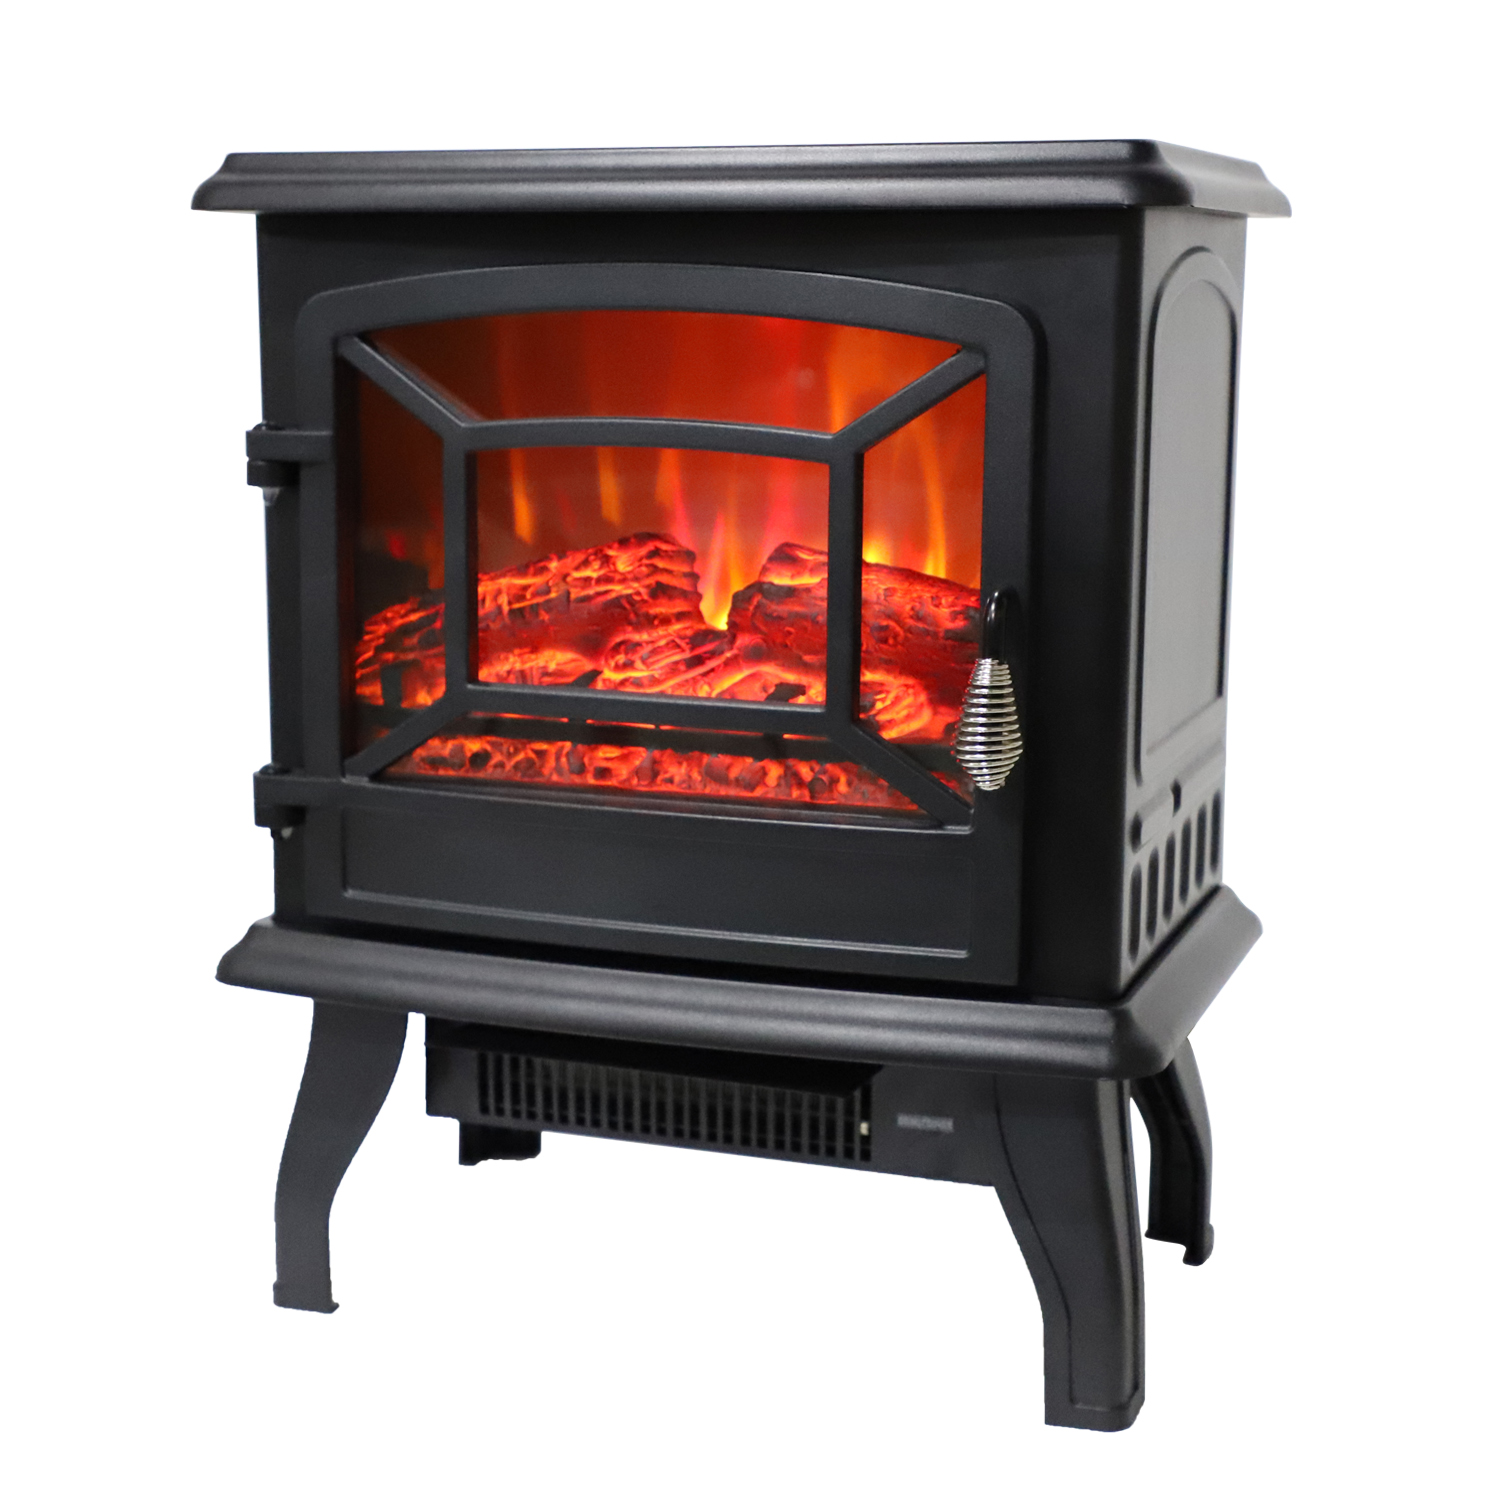 "Ktaxon Electric Fireplace Heater,Flame Electric 1400W Fireplace with 17"" Electric Fireplace Insert"